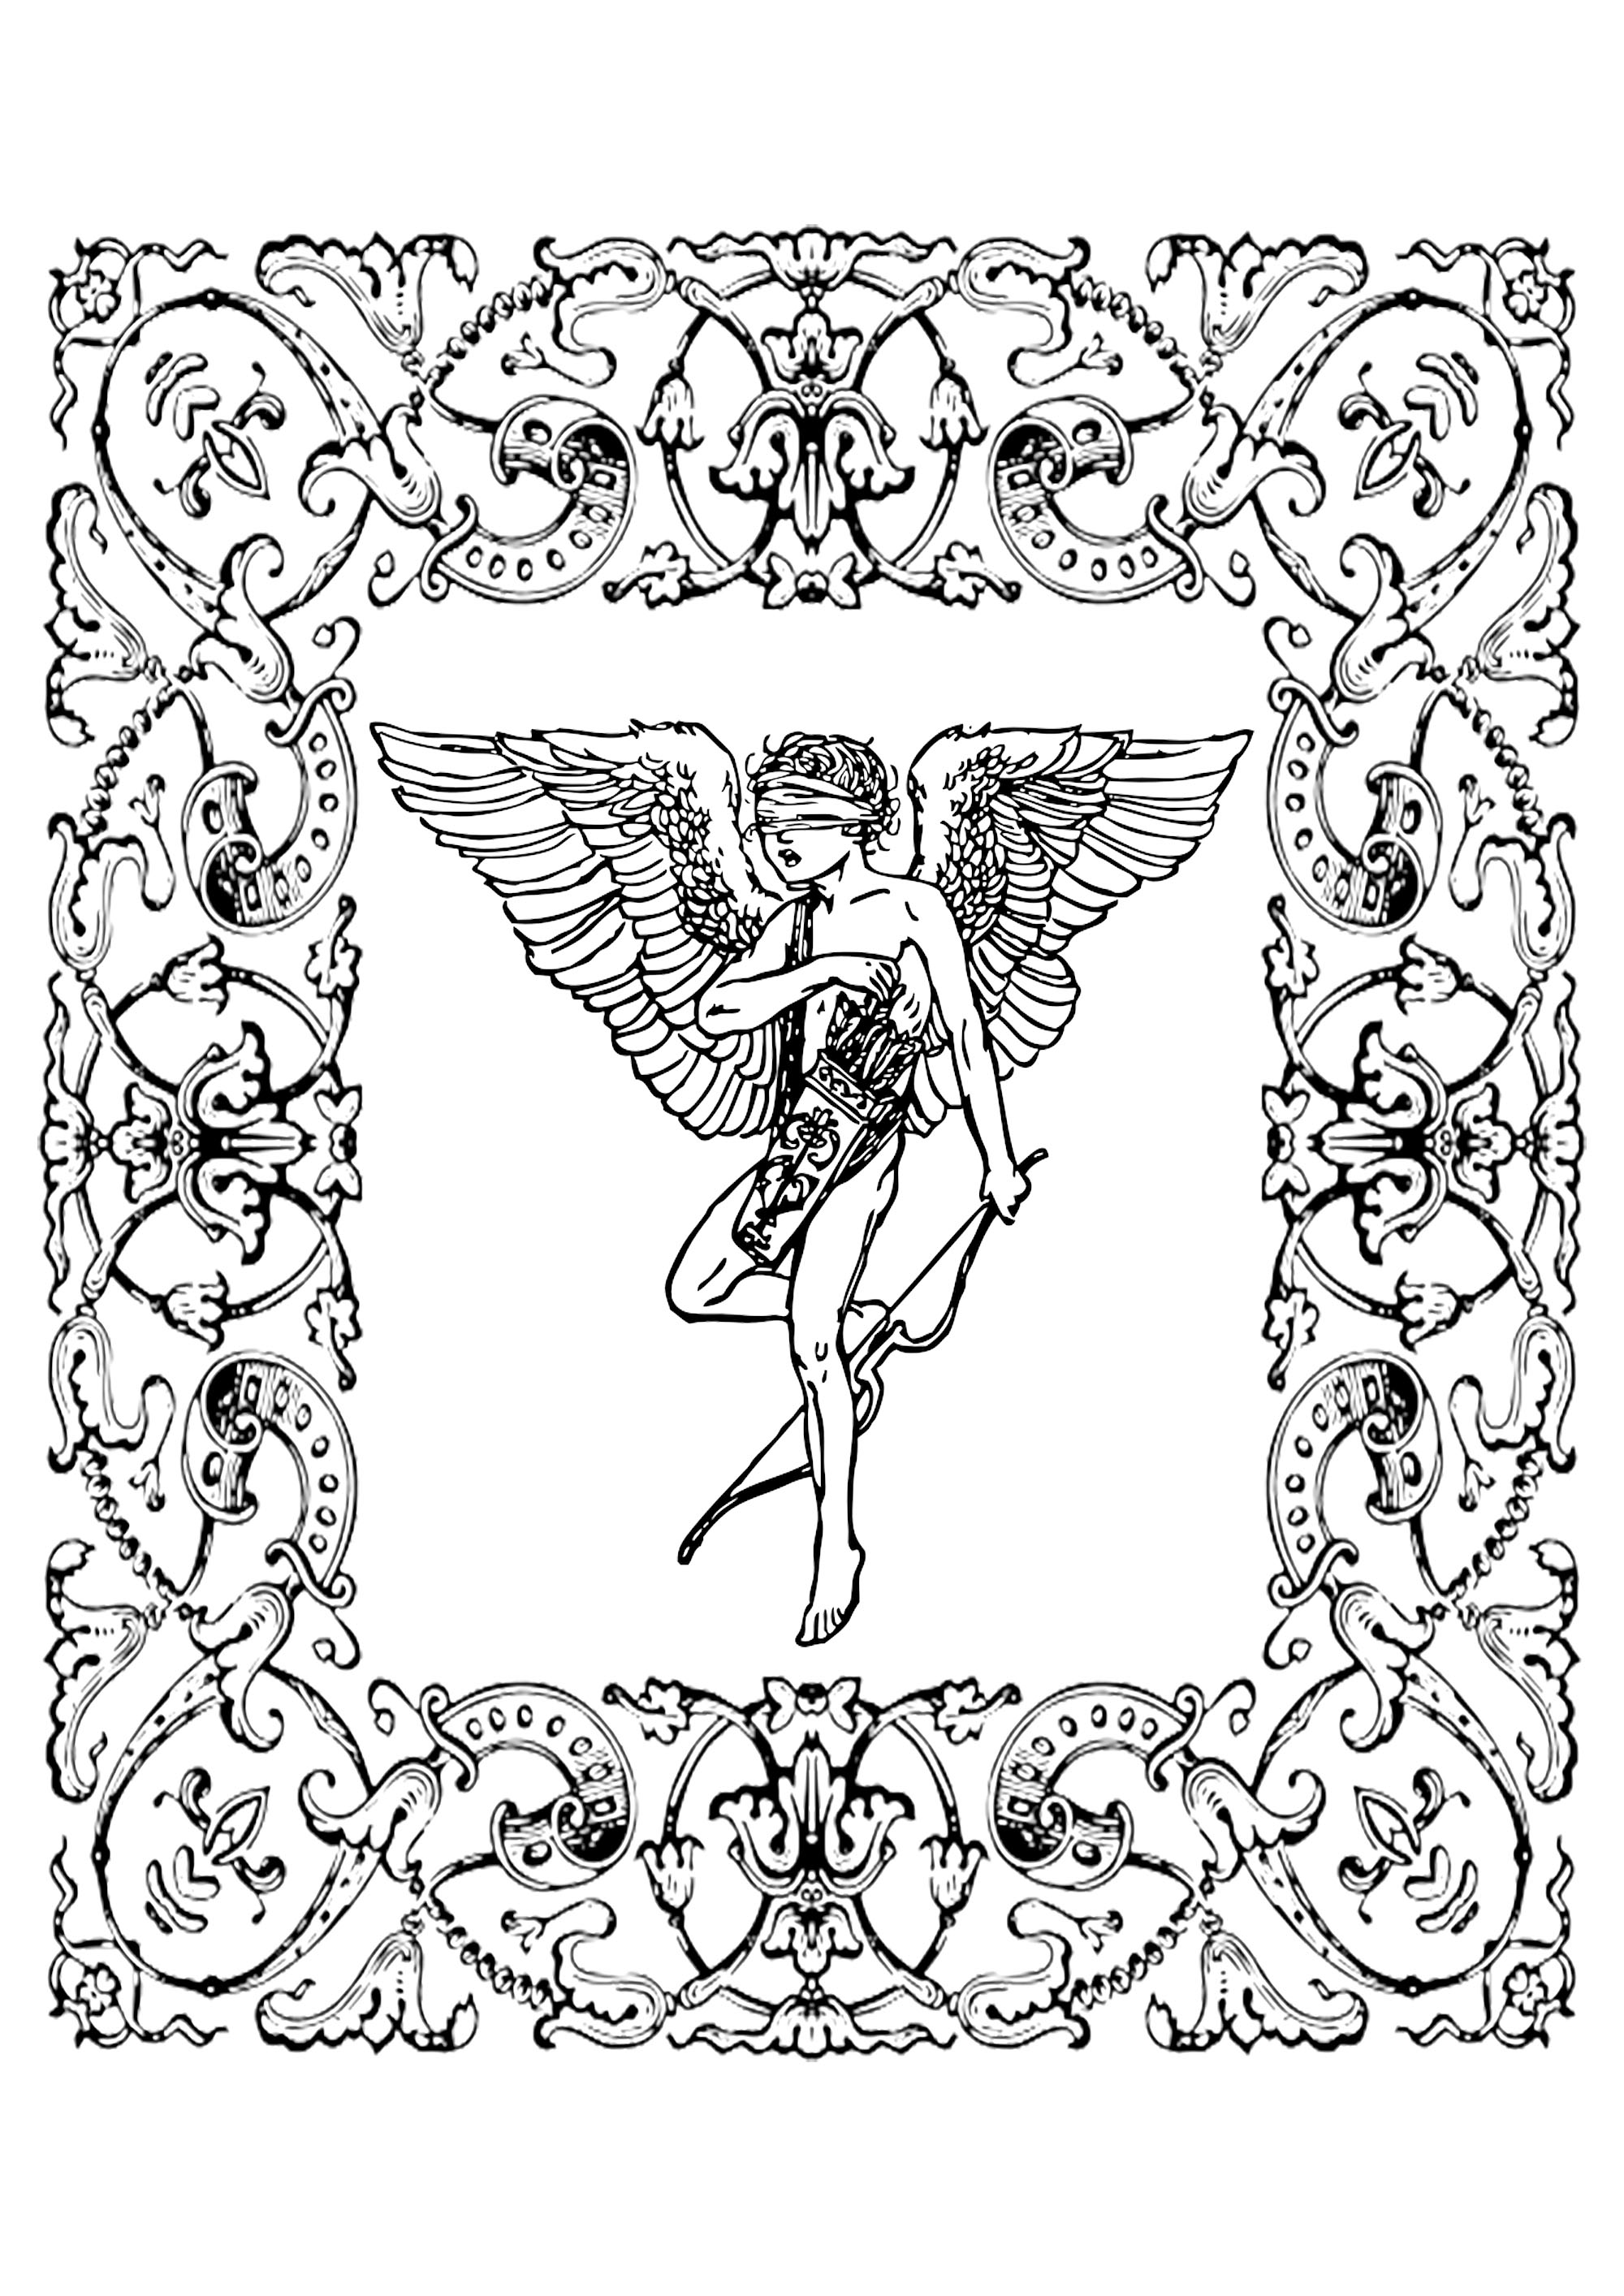 Vintage Cupidon drawing in a flowered frame